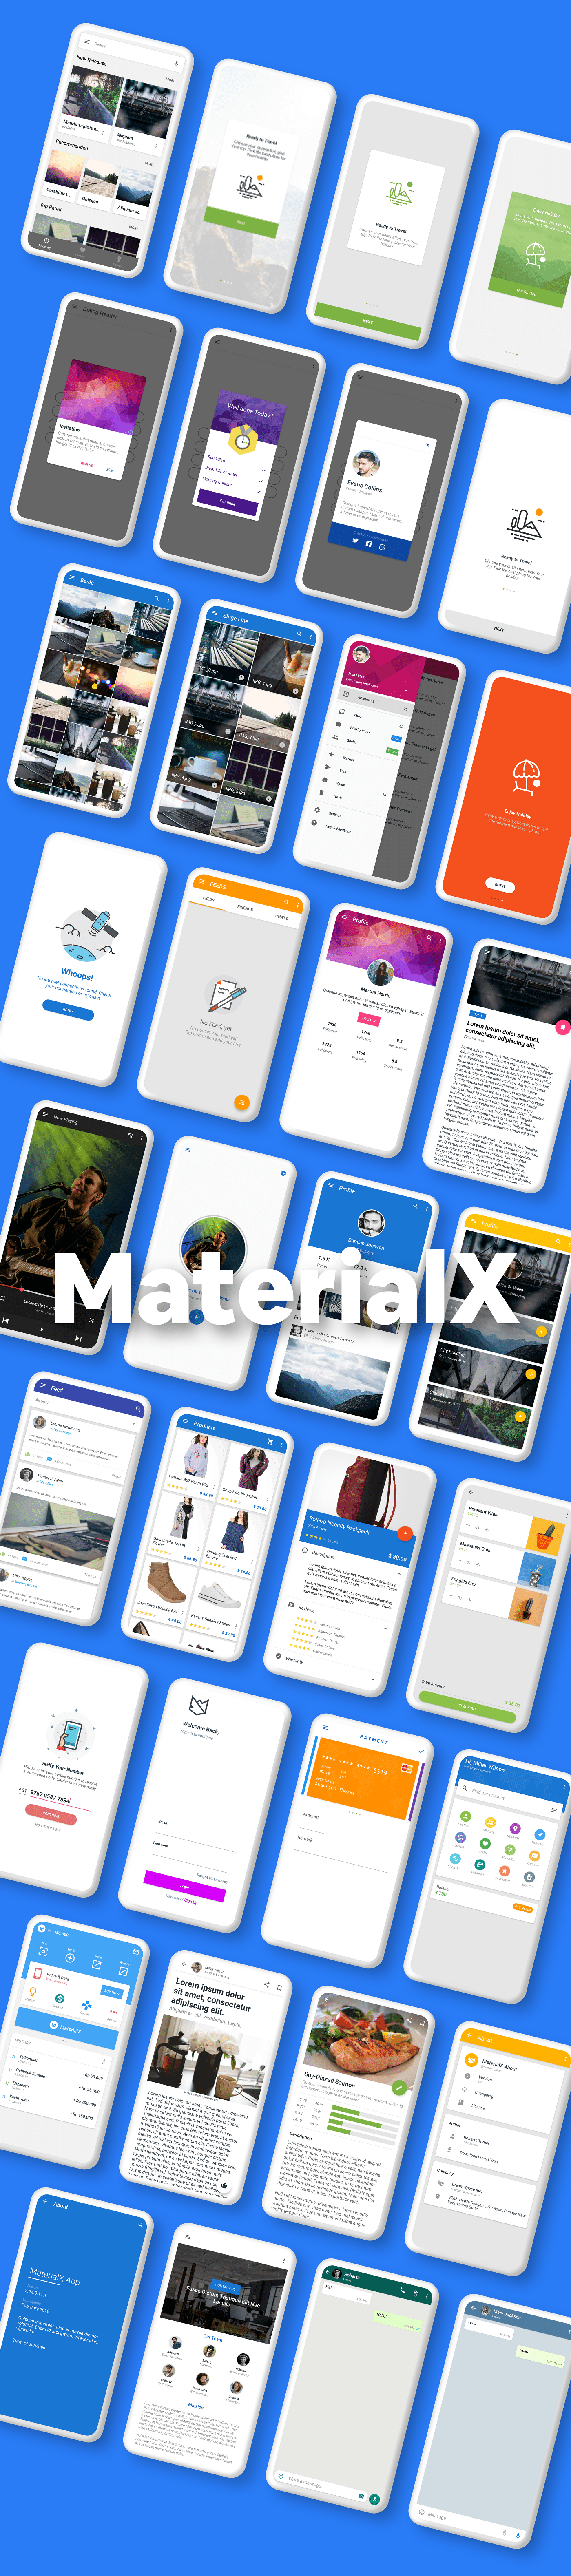 MaterialX - Android Material Design UI Components 2.7 - 5